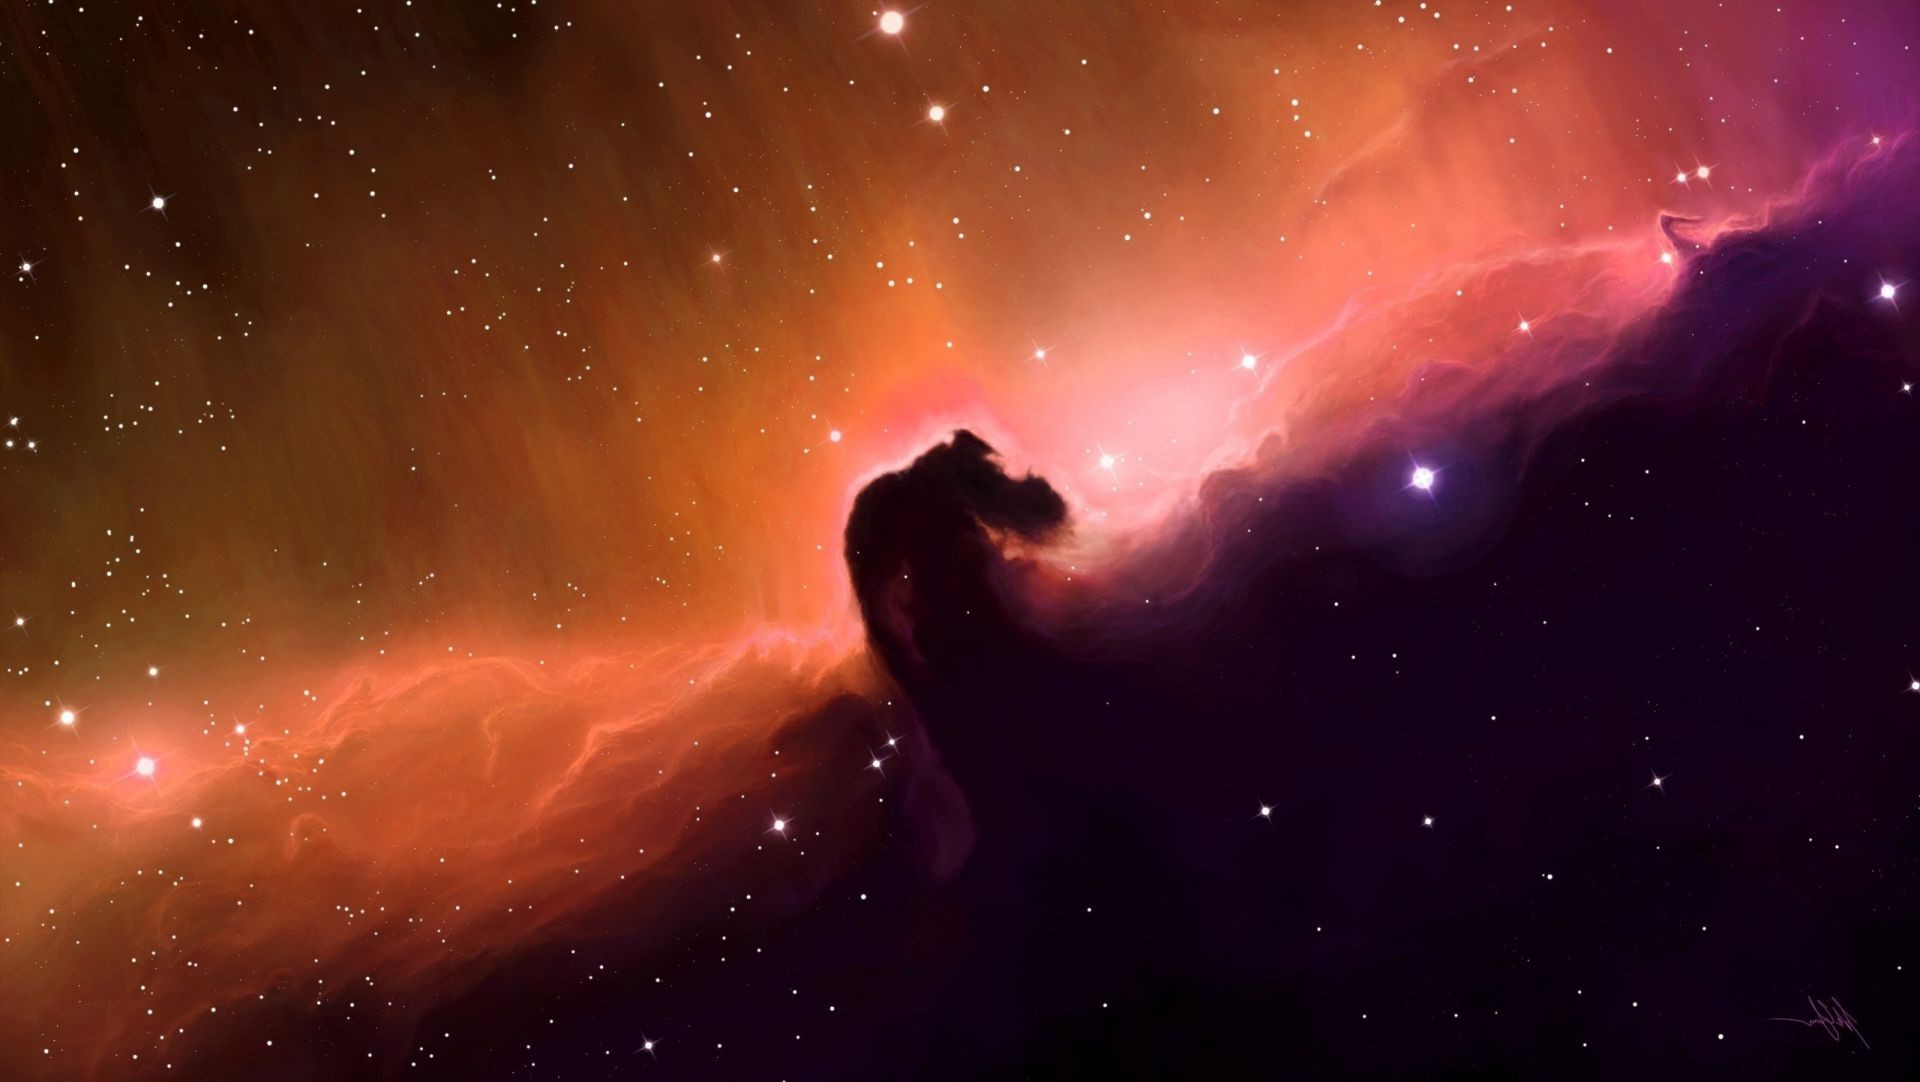 Space Art Horse Head Nebula Stars Android Wallpapers